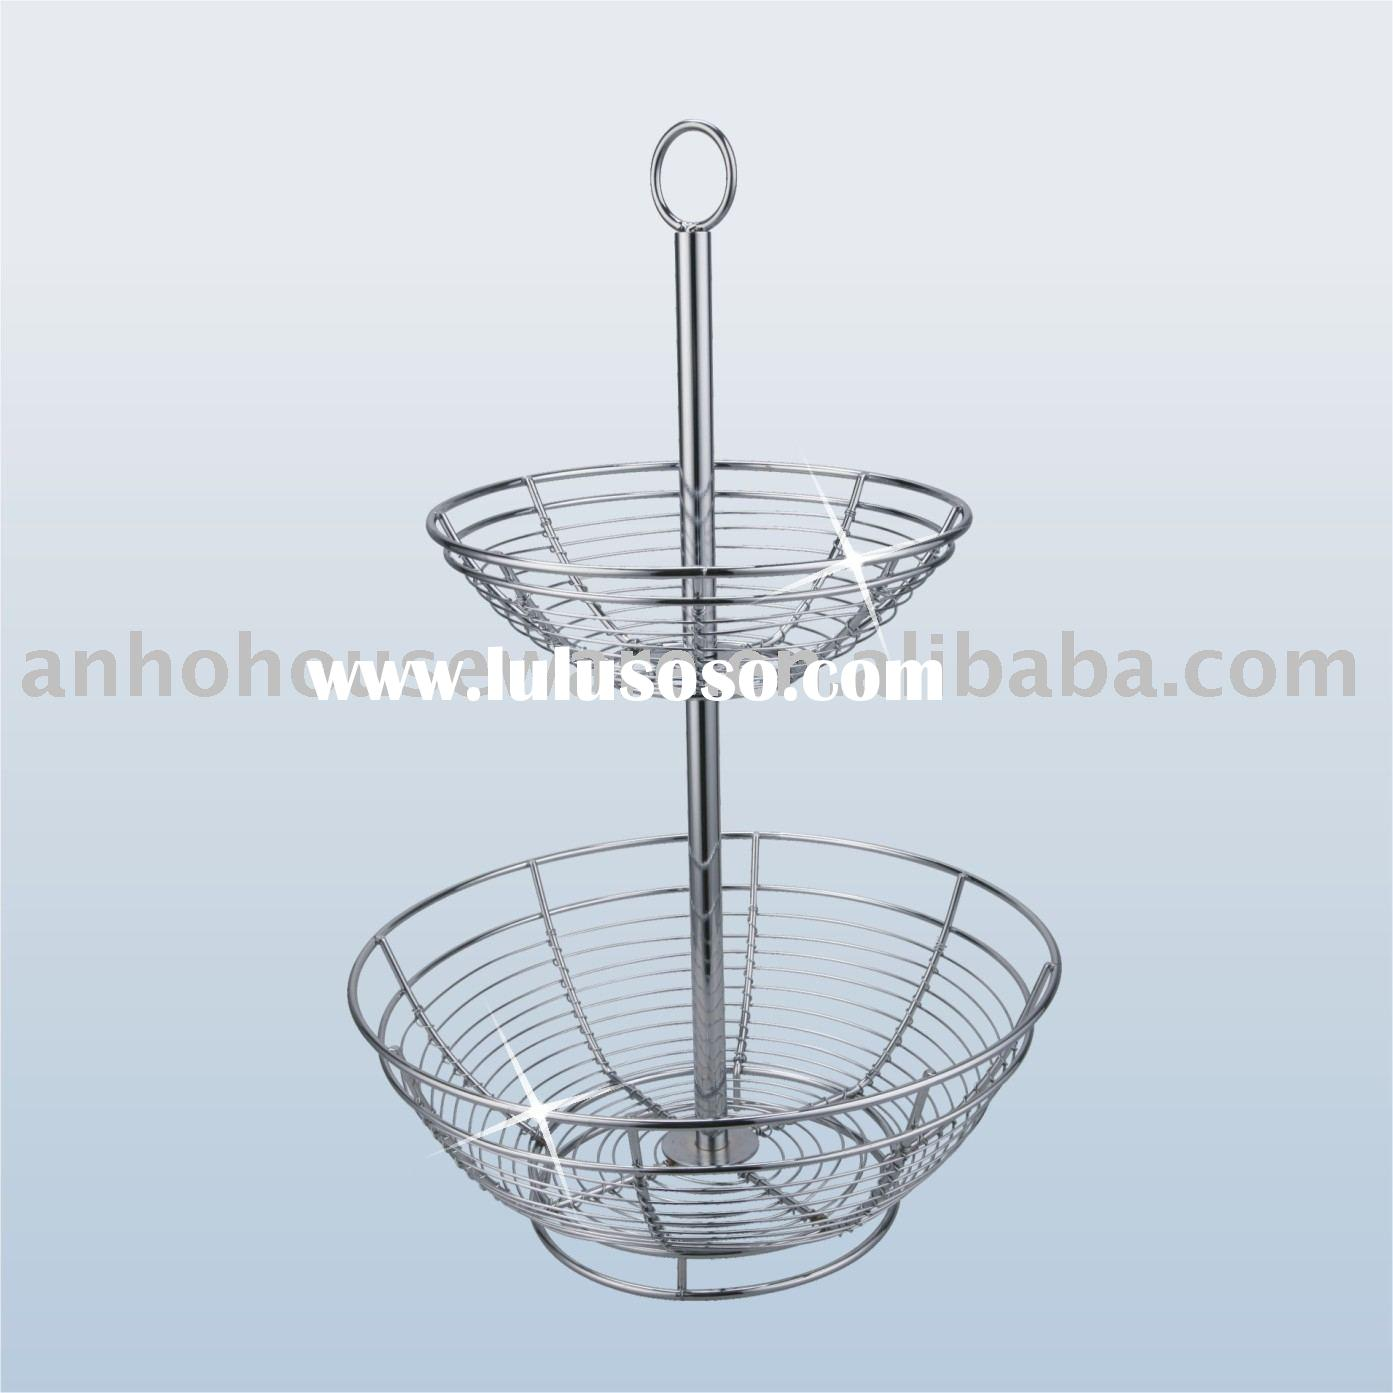 Fruit rack, Metal rack, Metal fruit rack, Stainless steel rack ,wire rack,Metal Fruit Basket 2 tier,